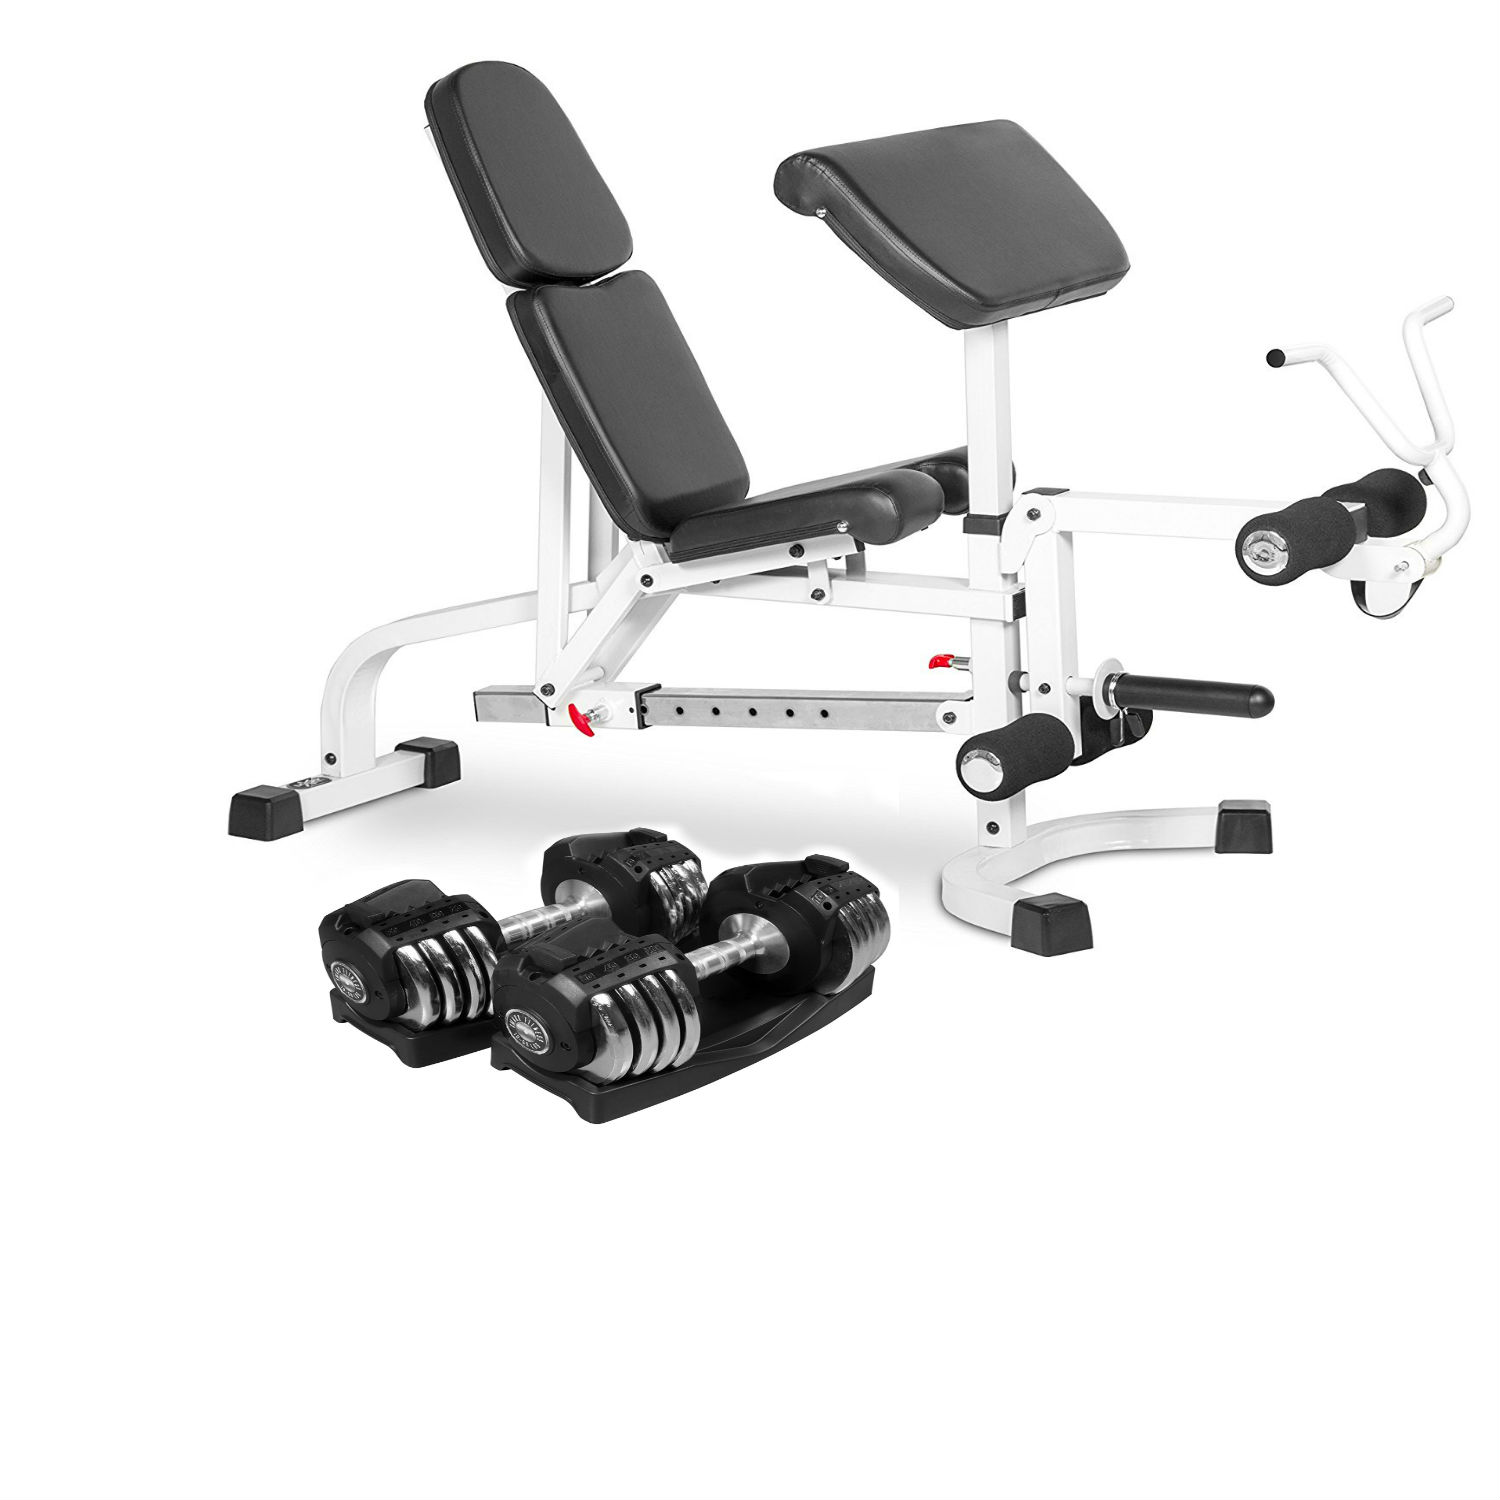 Combo Offer XMark Fitness Flat Incline Decline Weight Bench with Leg Extension and Preacher Curl XM-4419-White with Pair of 50 lb. Adjustable Dumbbells XM-3307-2